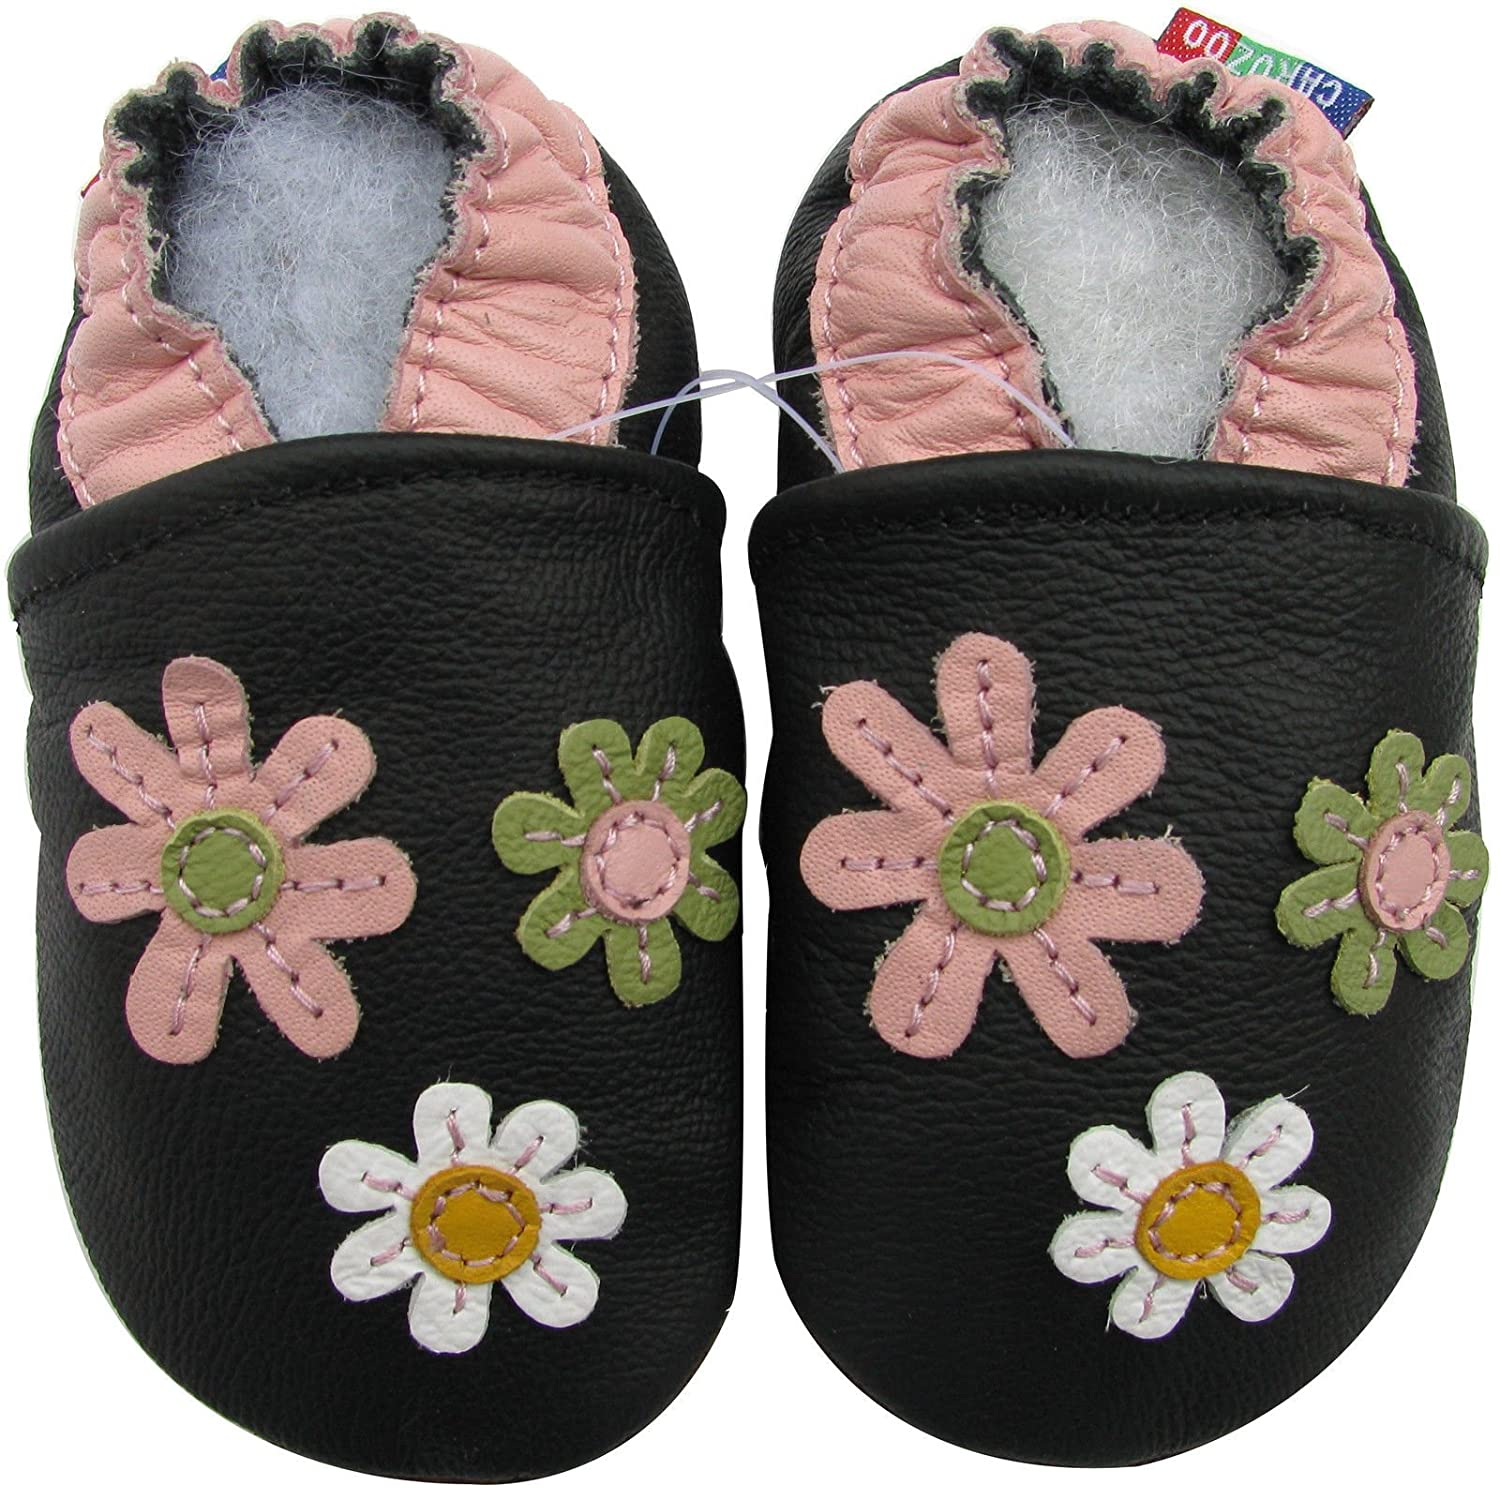 Carozoo 3 Flower Black Baby Girl Soft Sole Leather Shoes